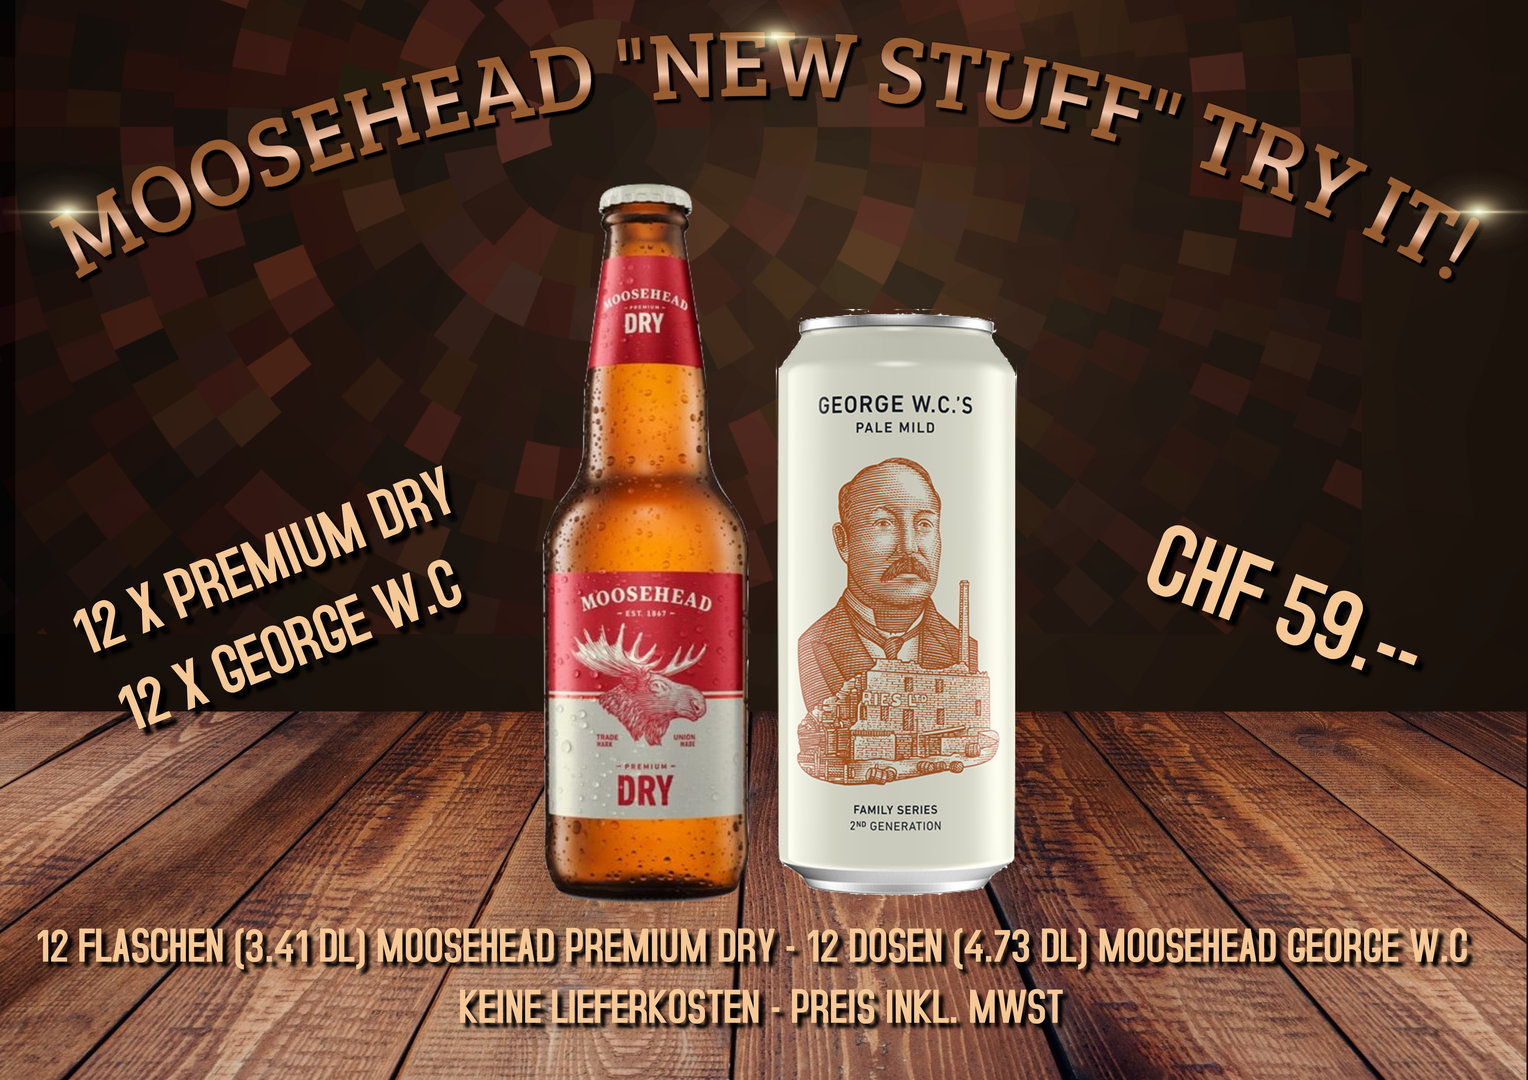 Moosehead New Stuff